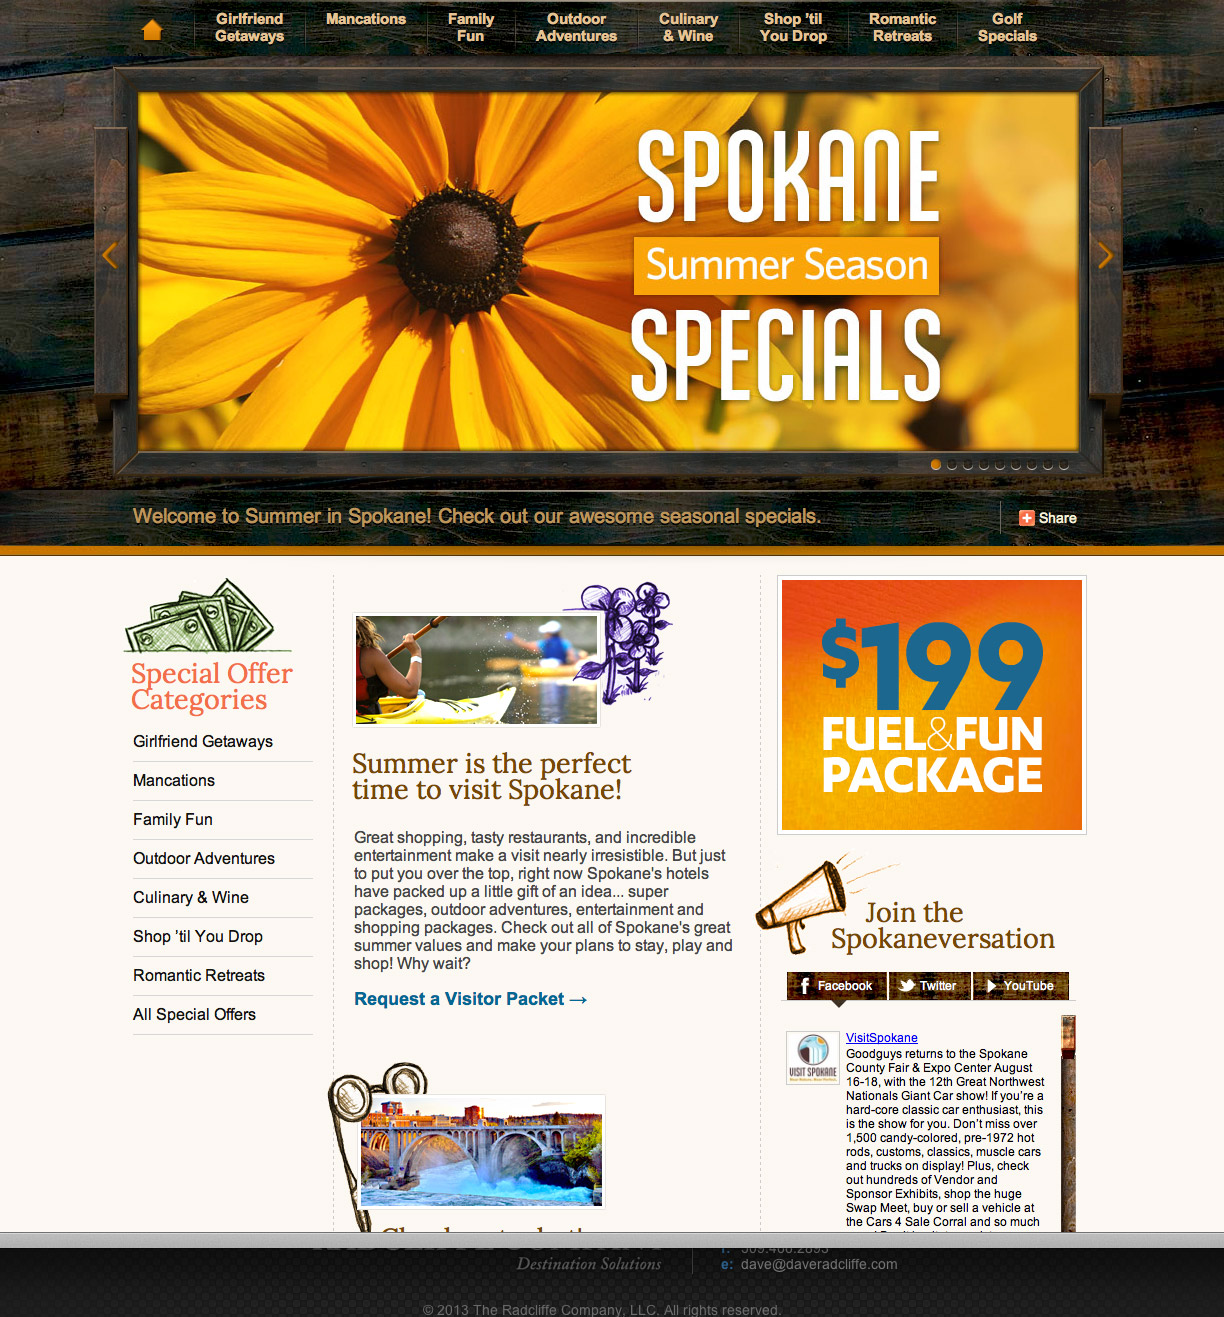 Summer in Spokane website development & design